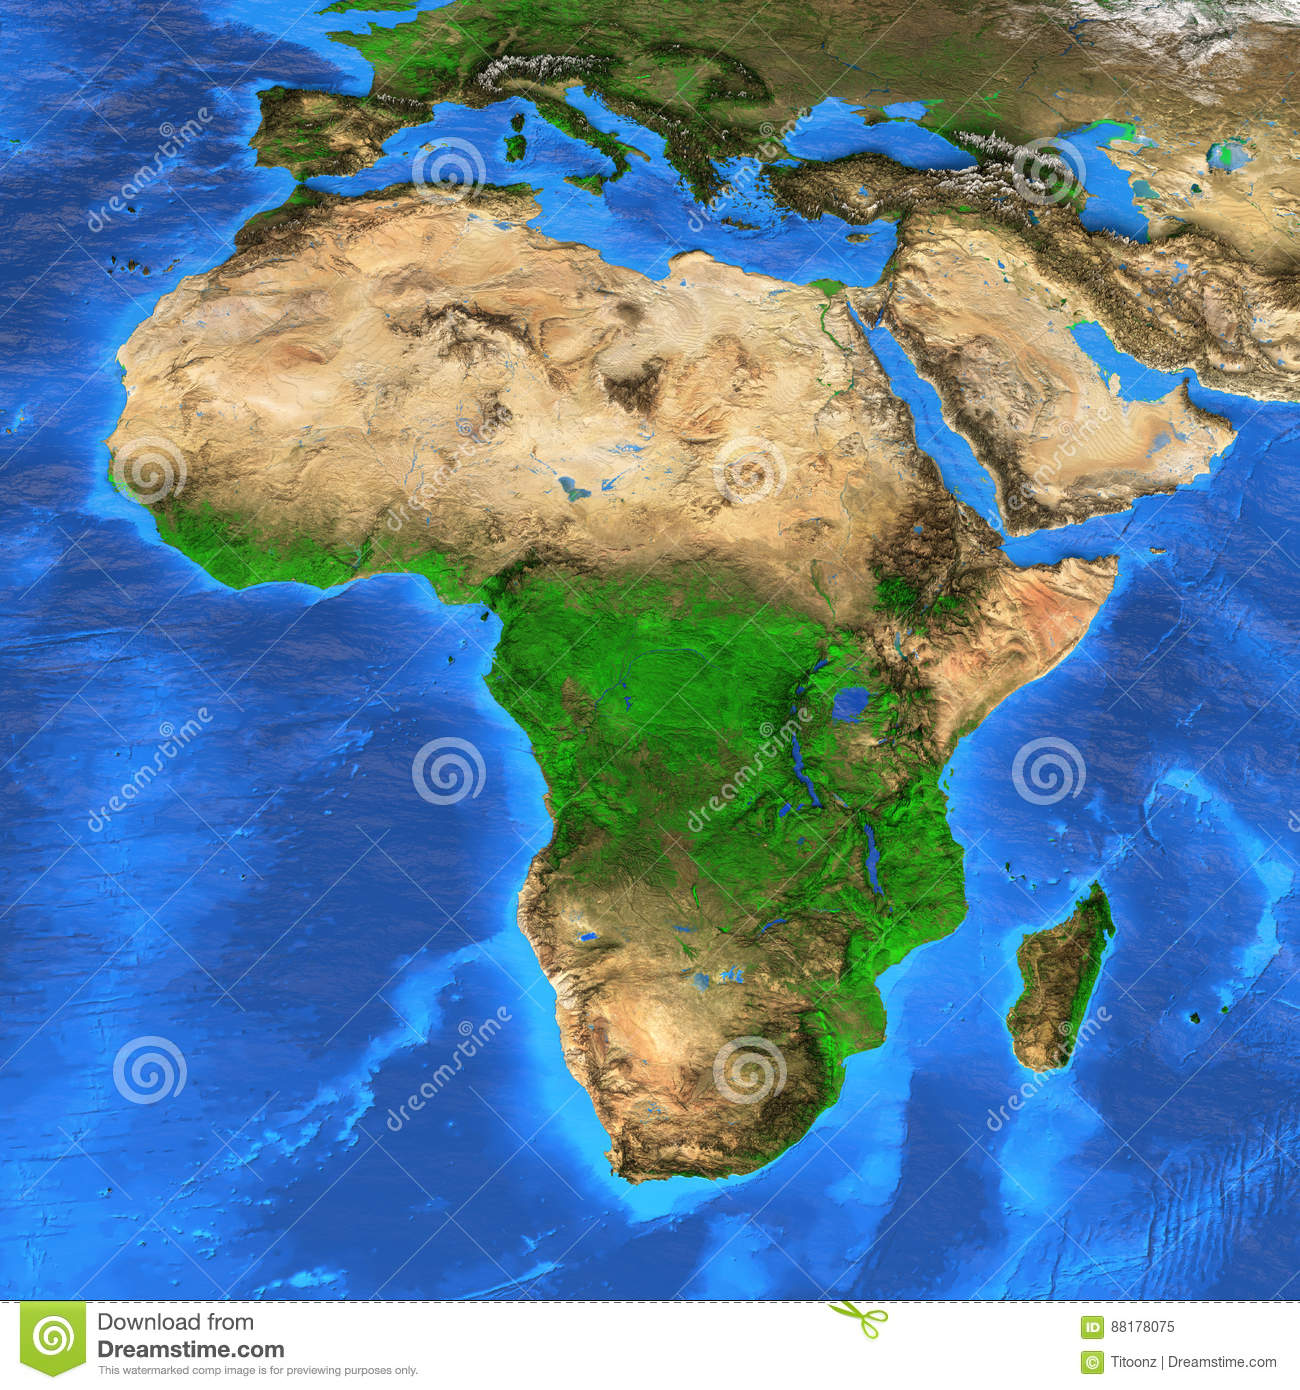 57 High Detailed World Map Photos Free Royalty Free Stock Photos From Dreamstime